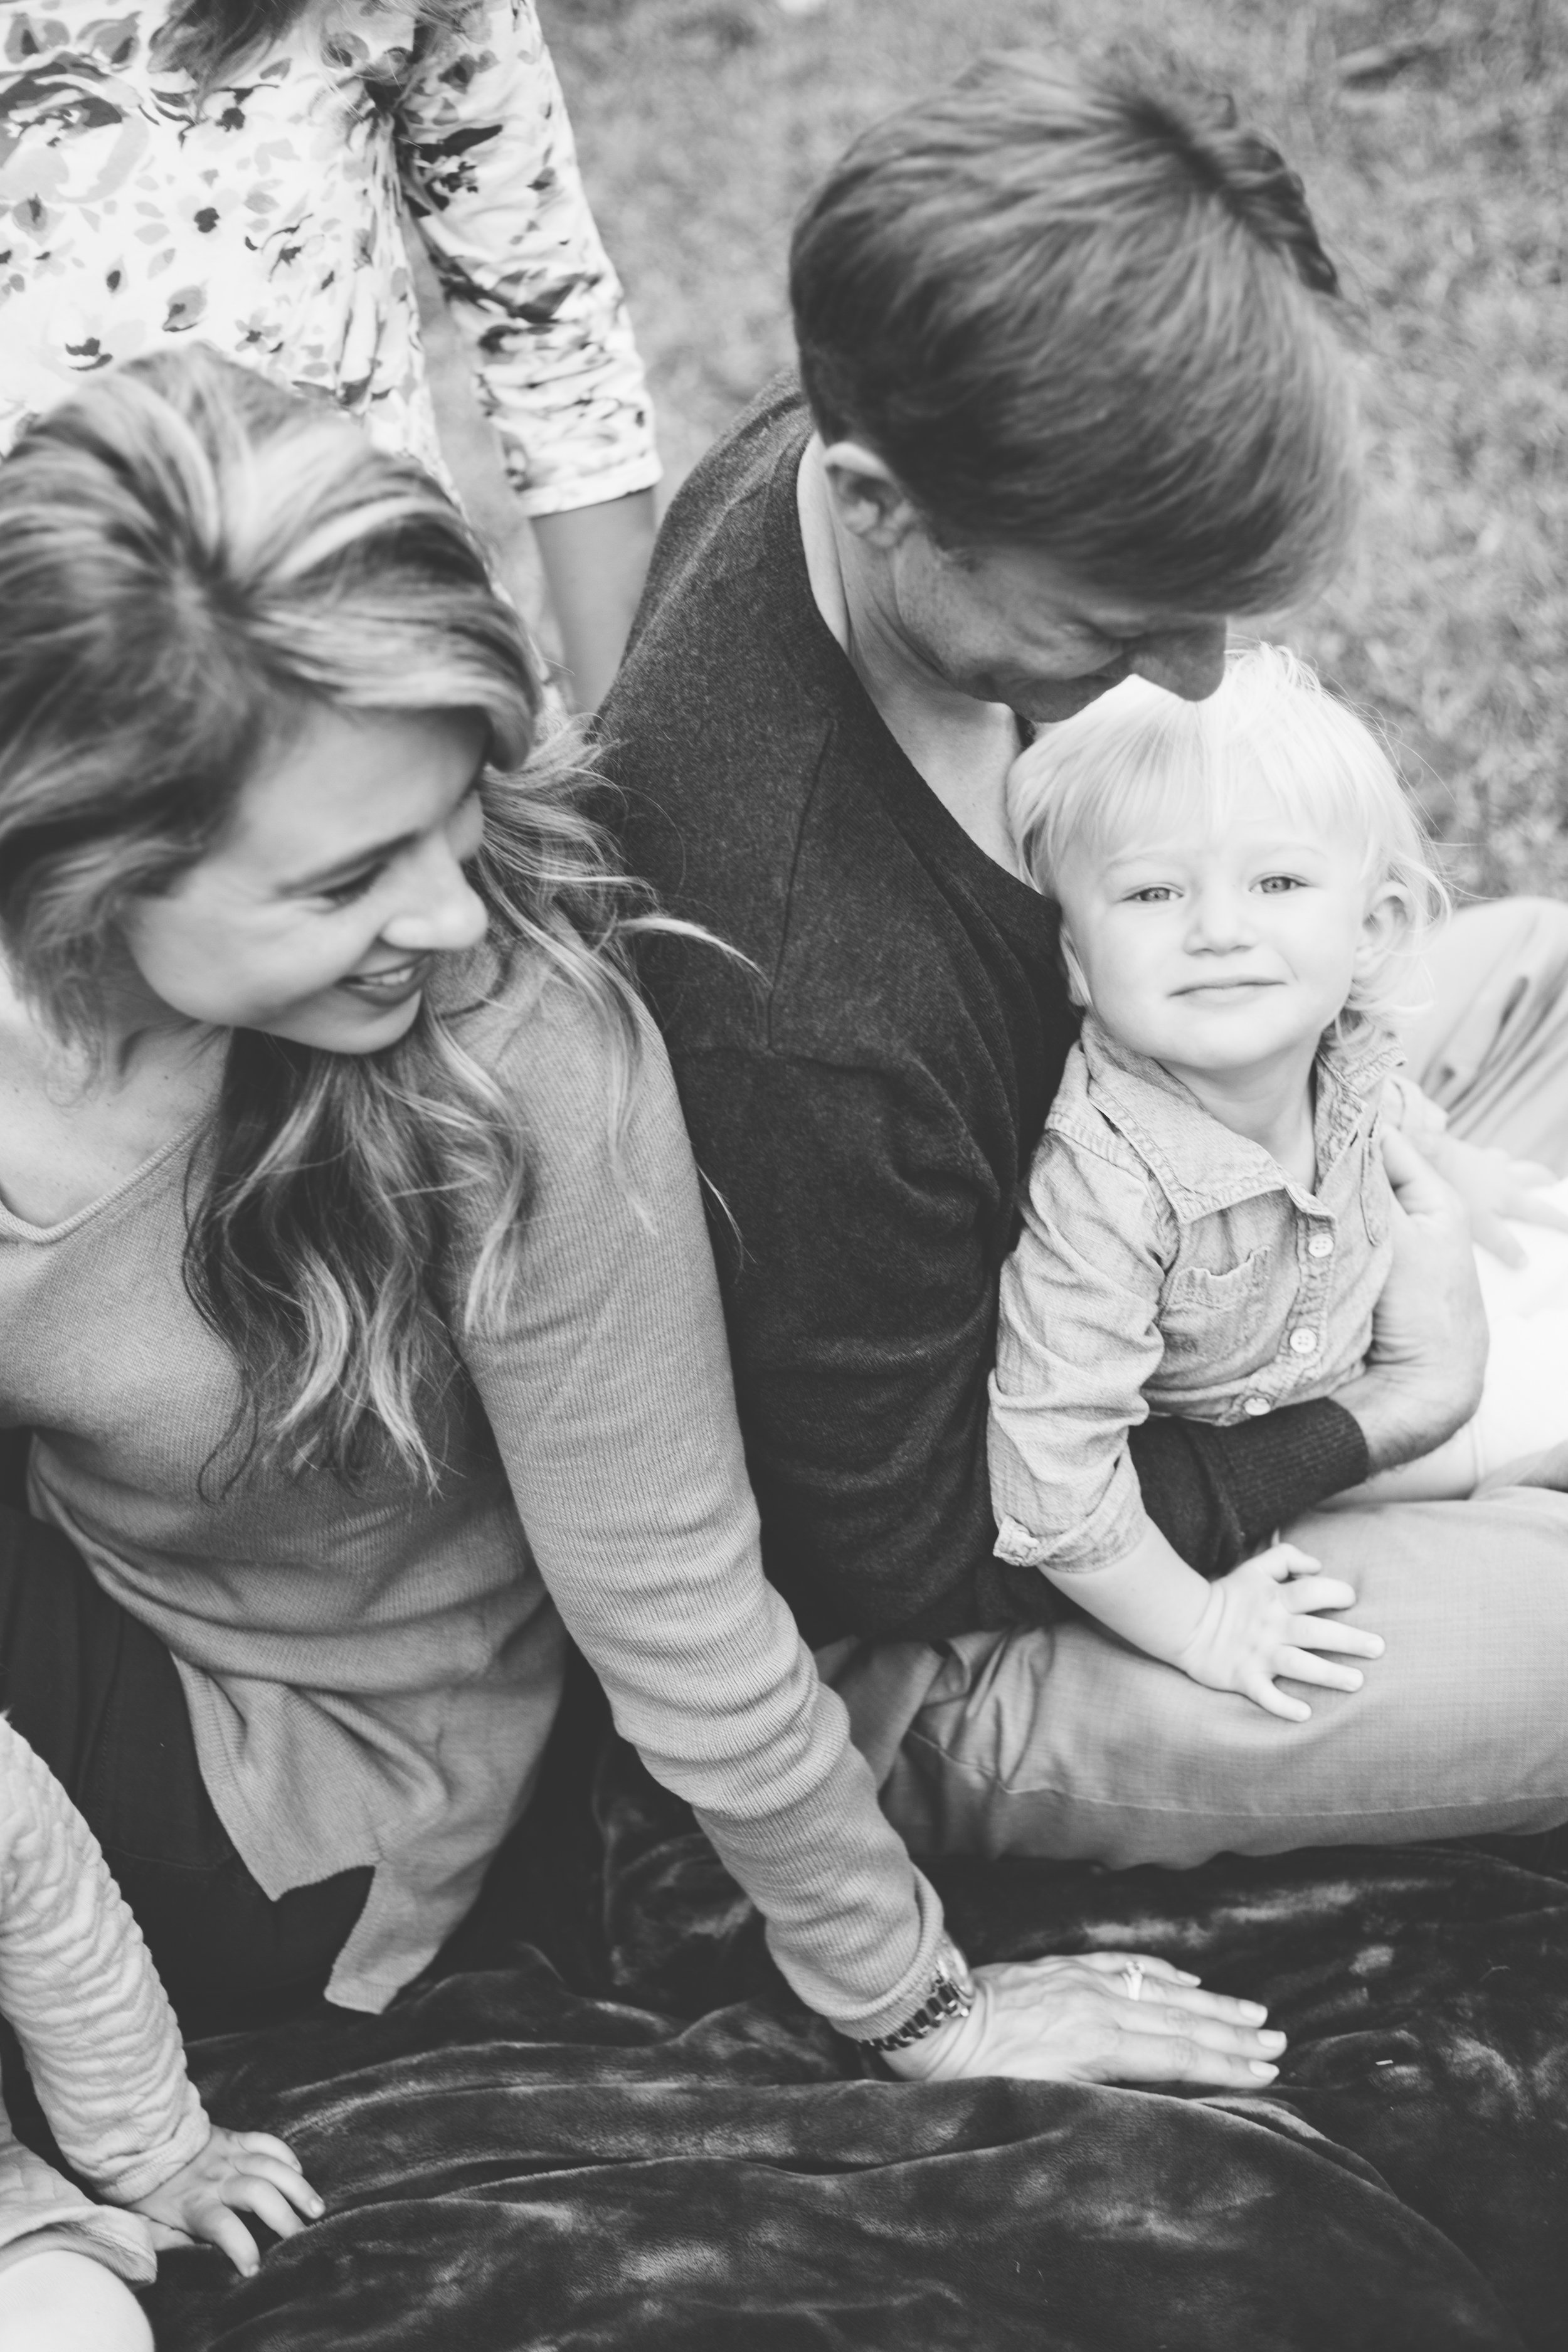 family, poses, outdoor, Knoxville, ideas, outfits, large, country, field, inspiration, funny, with toddler, color scheme, creative, siblings, fall, unique, natural, natural light, photoshoot, colorful, vibrant, fall, black and white